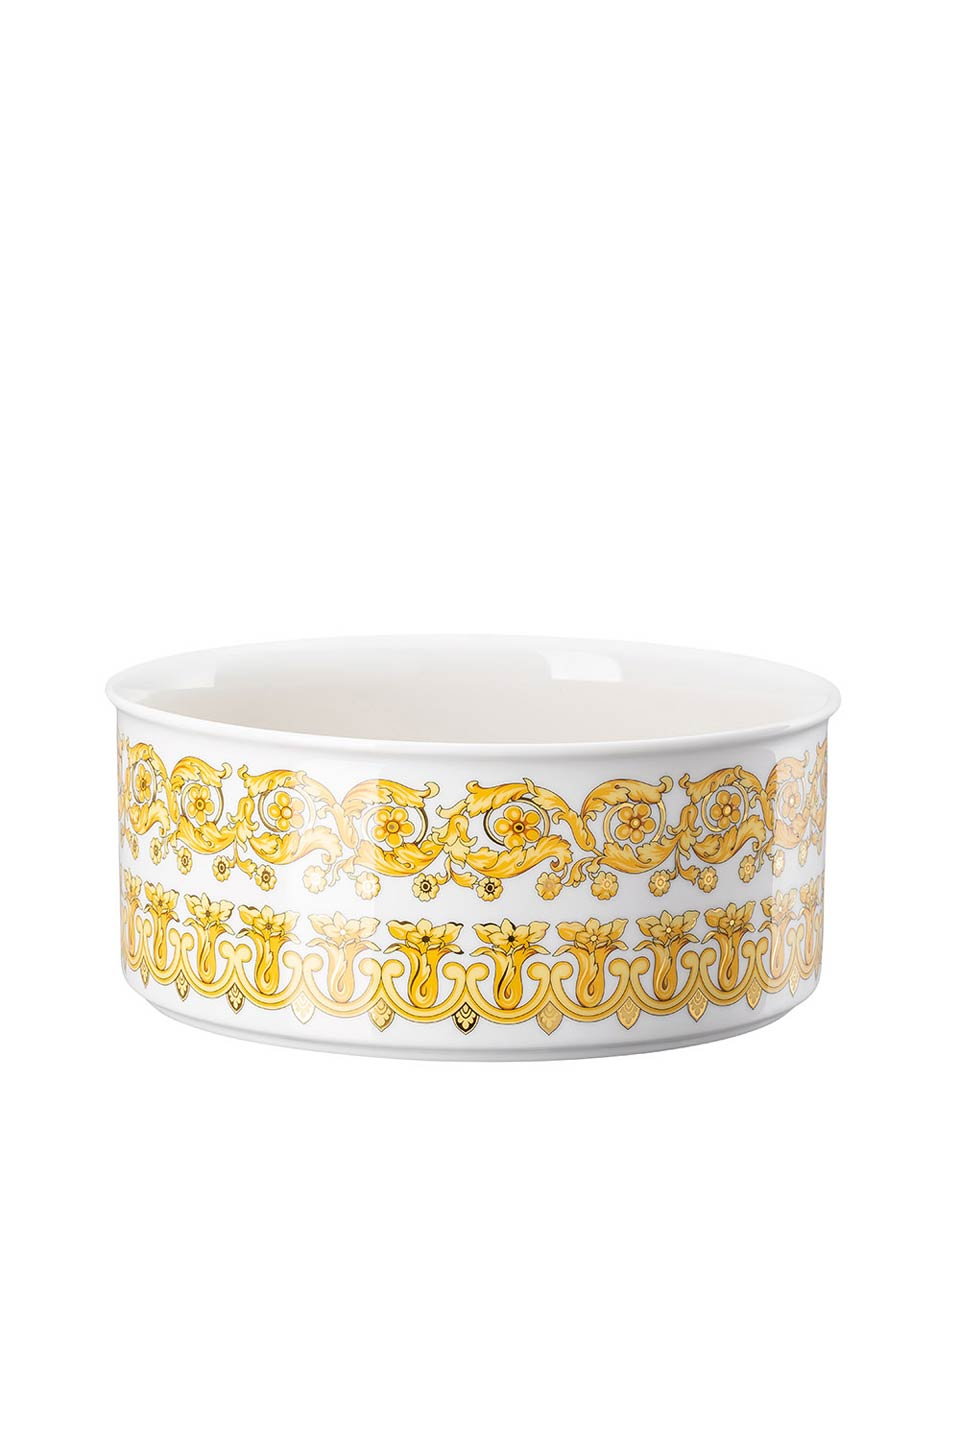 /details.cfm/Versace_by_Rosenthal?prodid=316566